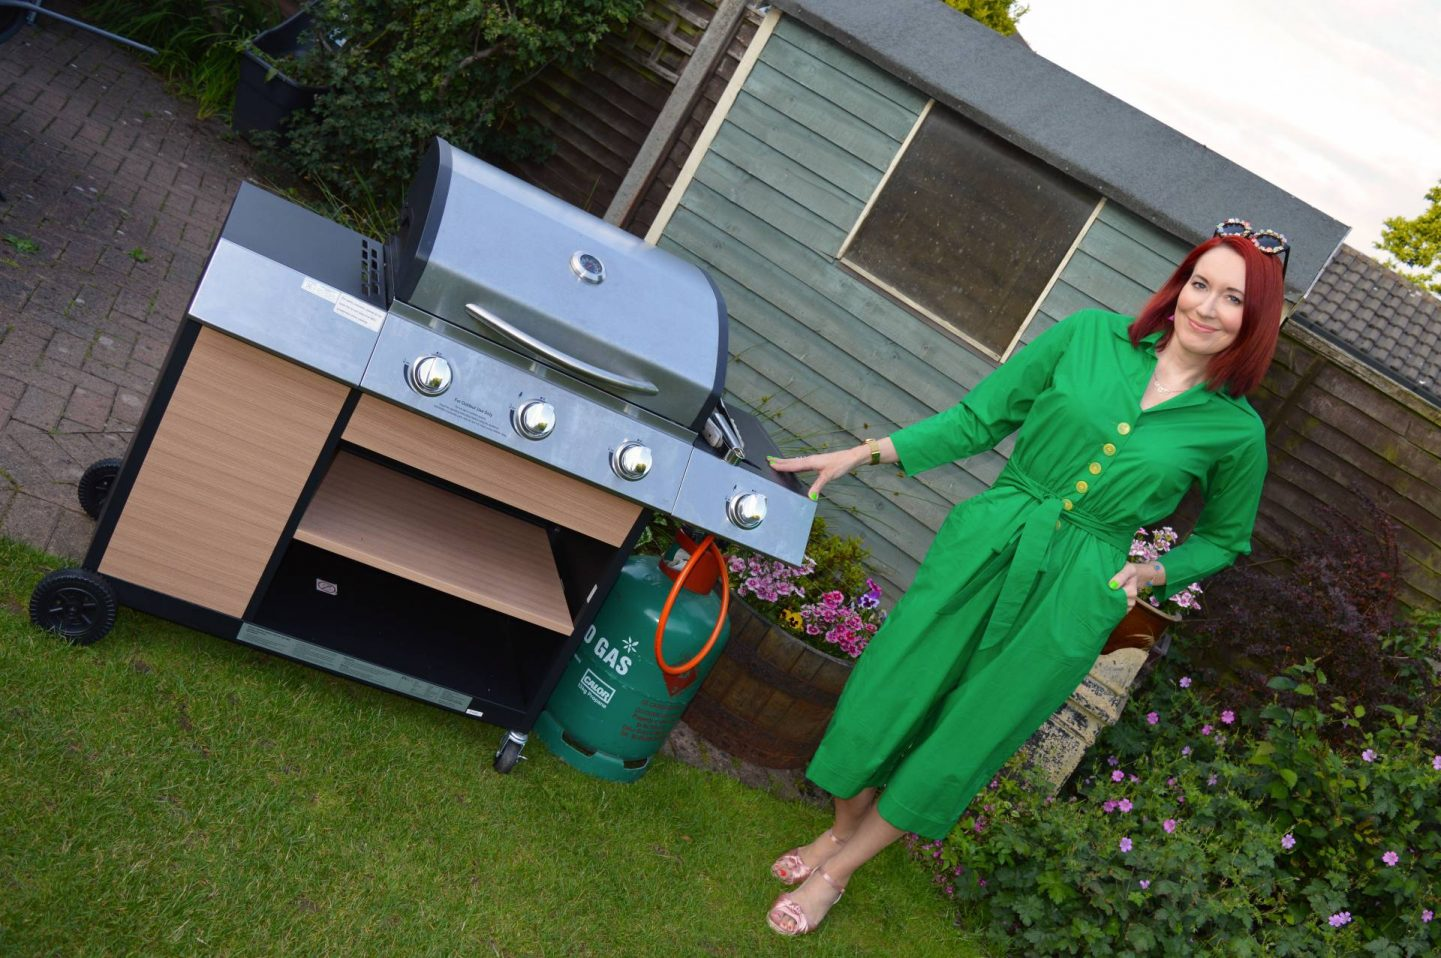 Sizzlin' Backyard BBQ Style - July's Stylish Monday Link Up, Love Your Look green parrot jumpsuit